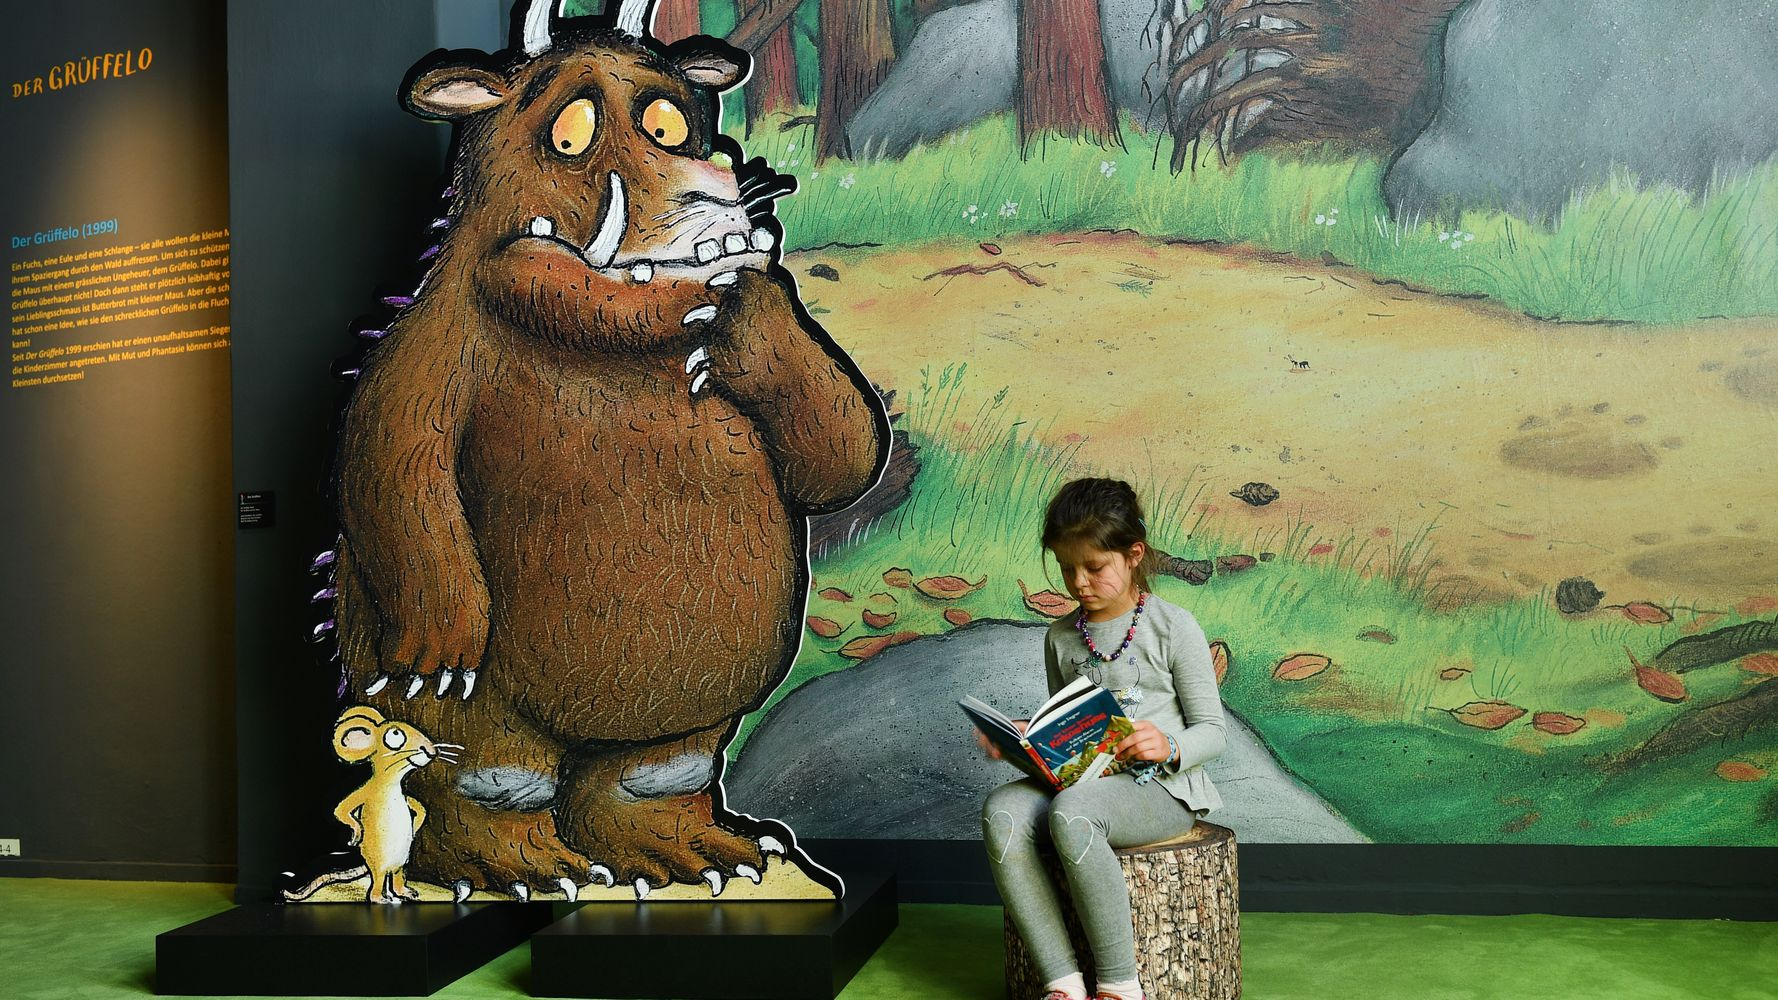 Overthinking The Gruffalo – Or What Happens When You Read The Same Children's Book 100 Times